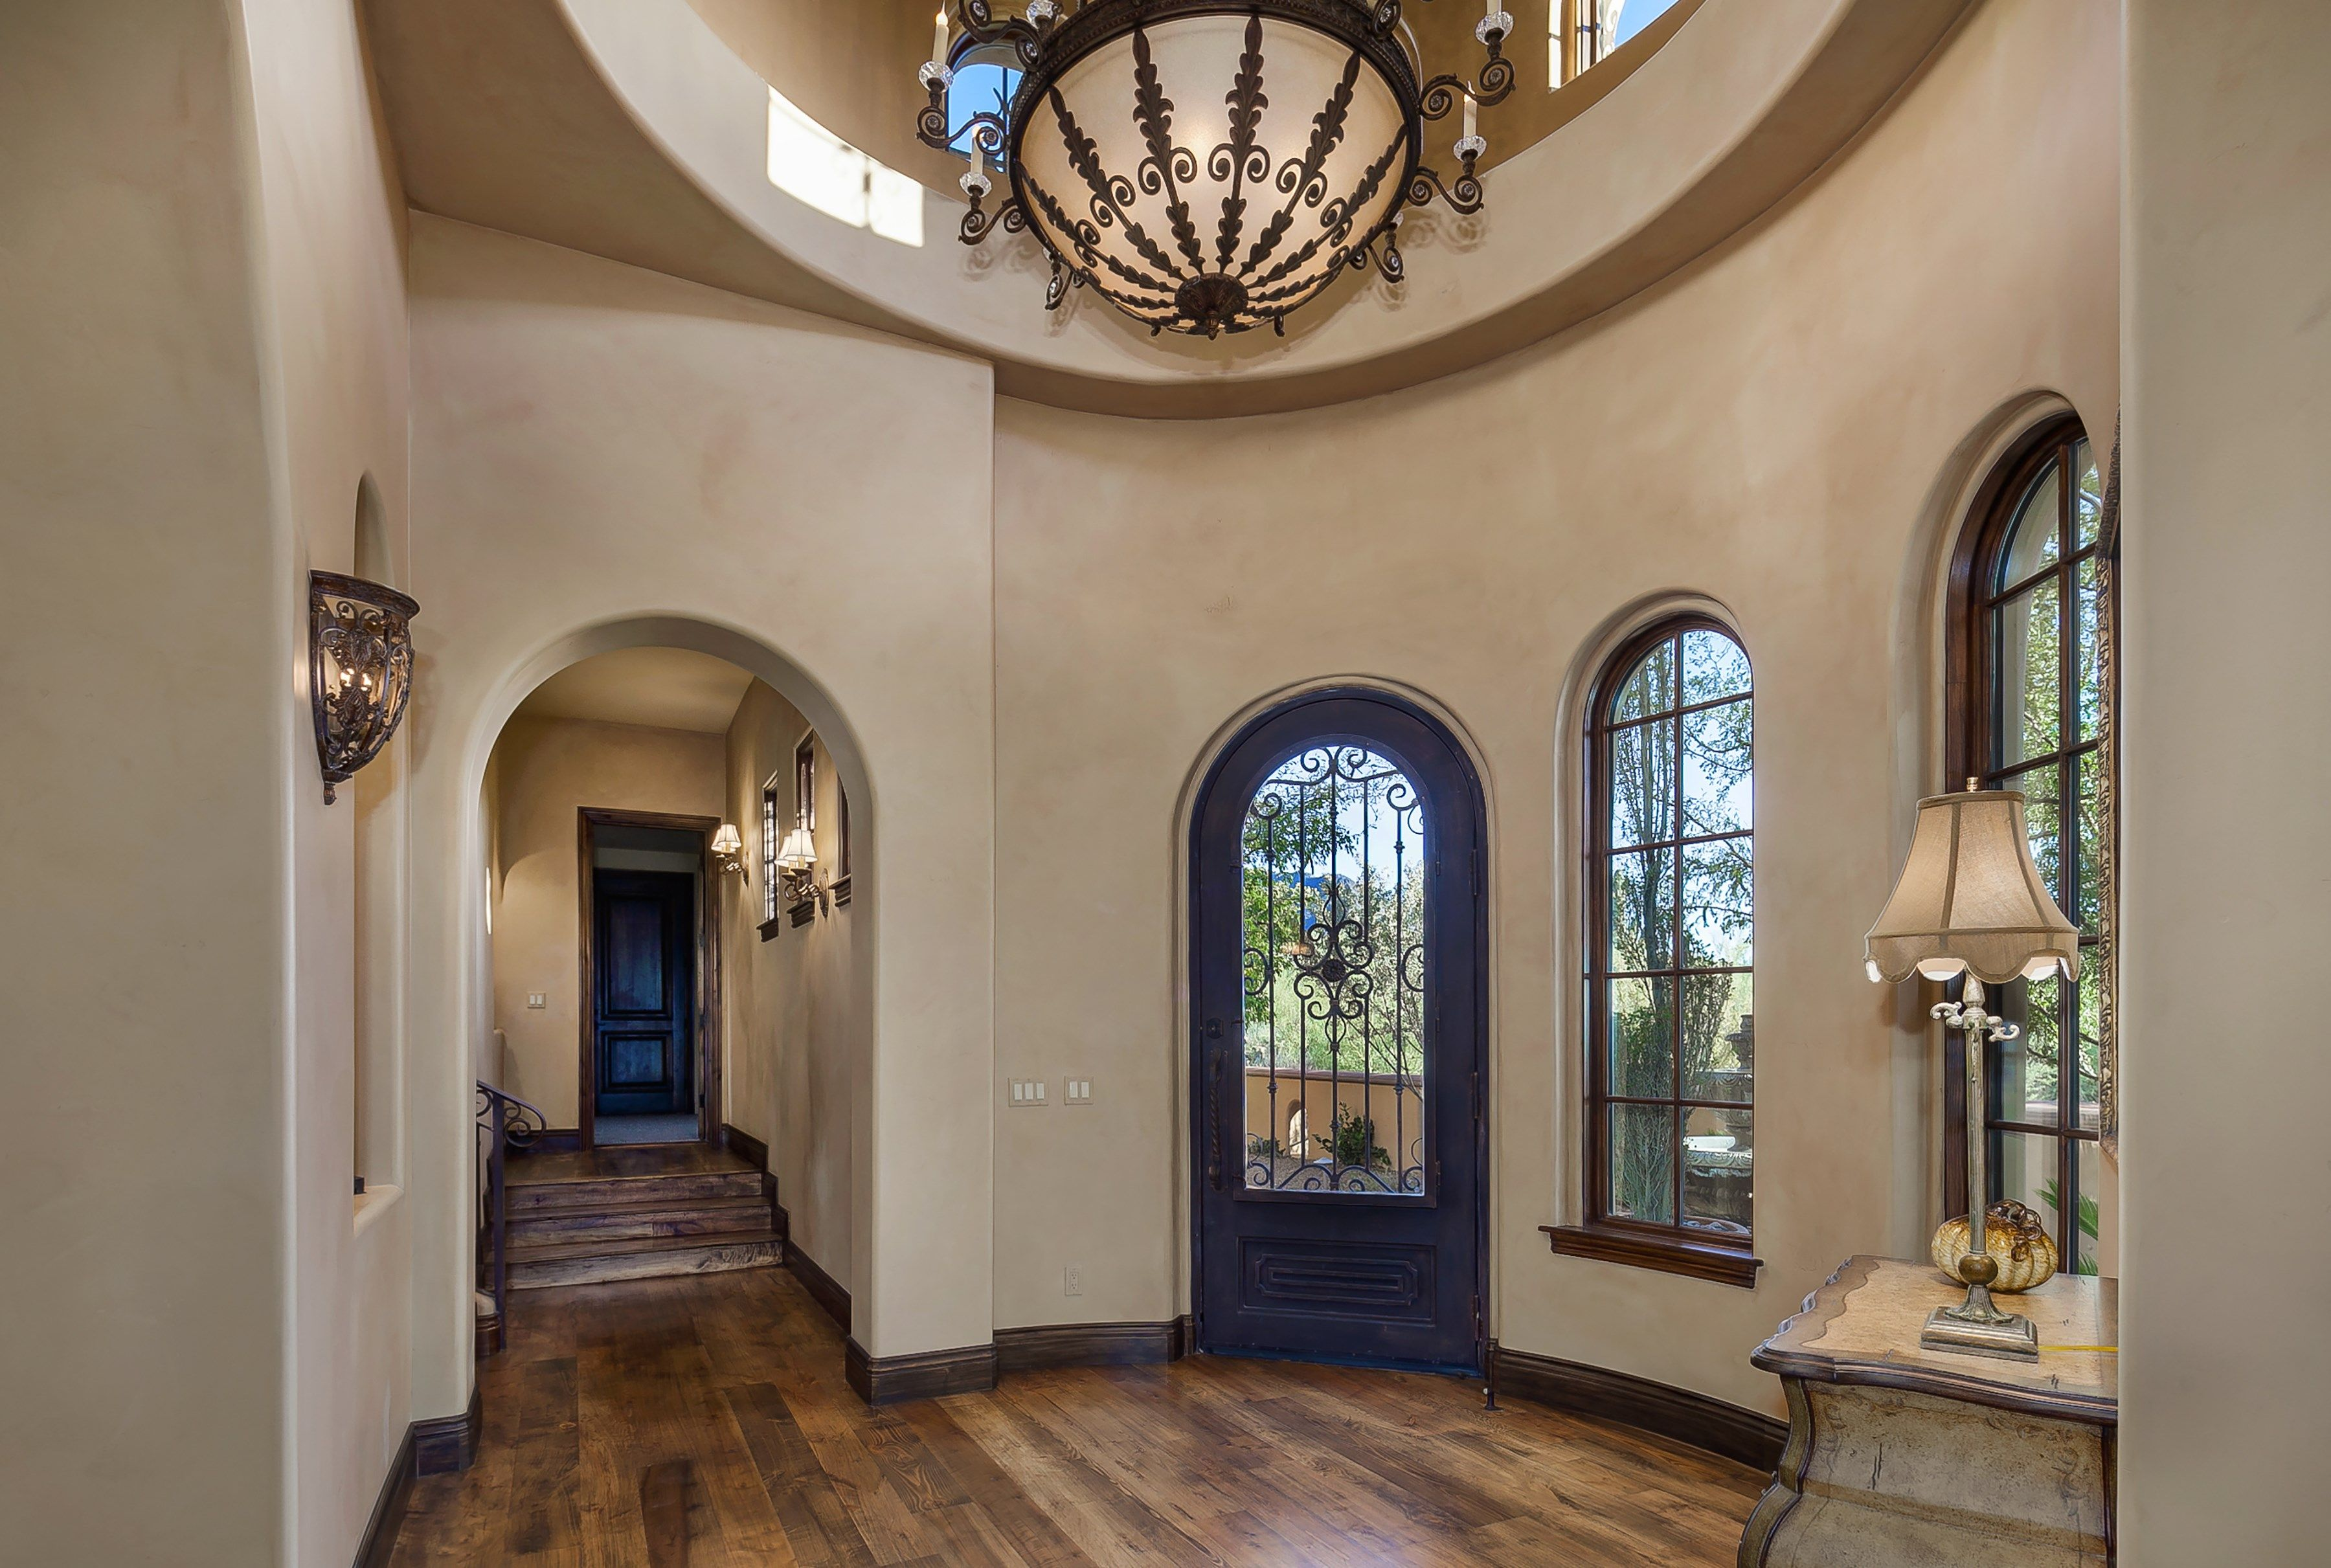 Sprawling Silverleaf estate for sale on 2+ acre pristine